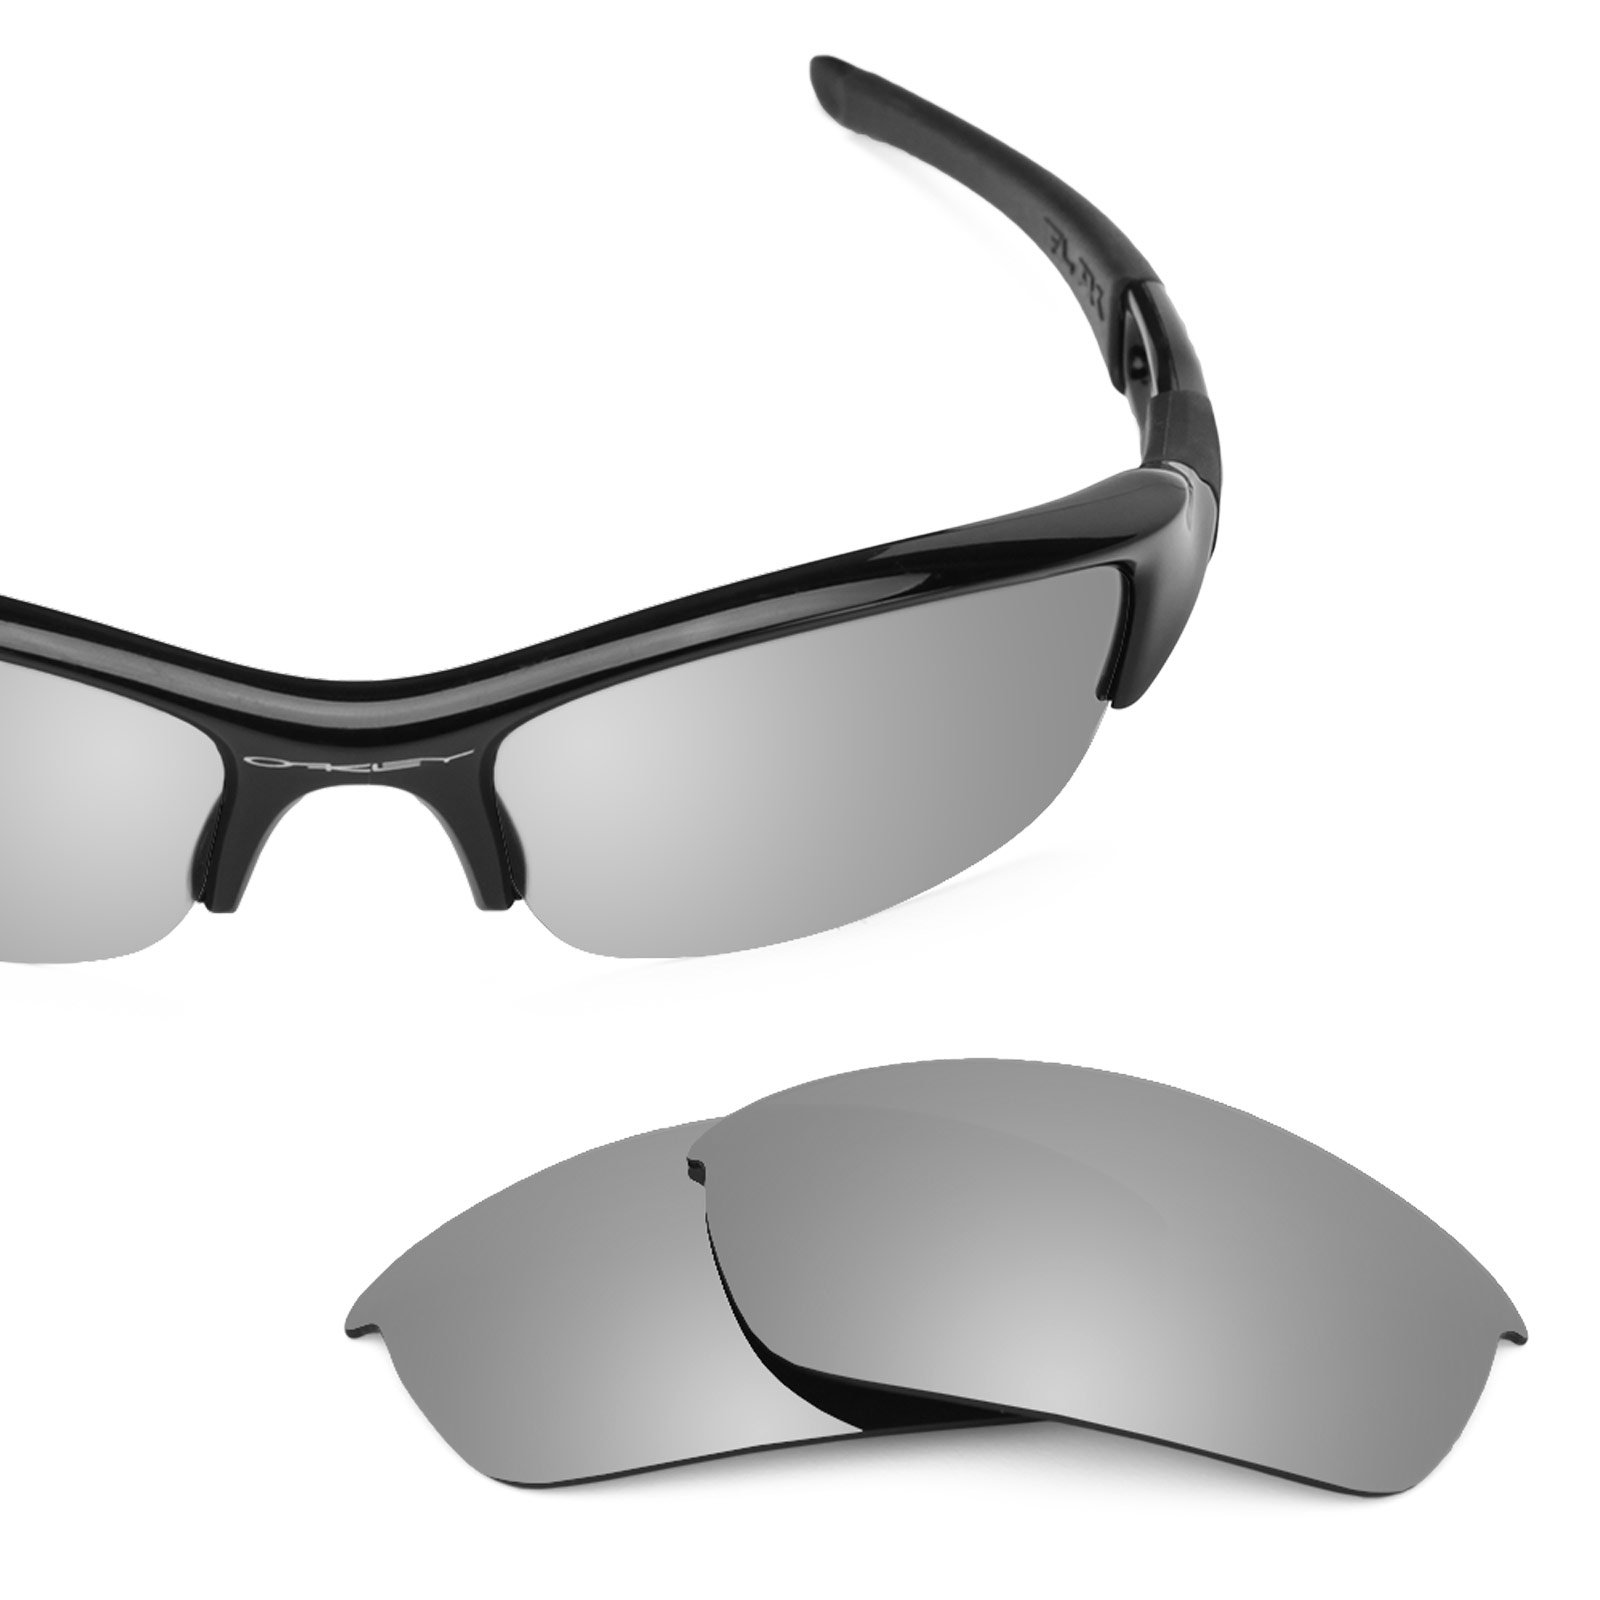 Revant Replacement Lenses for Oakley Flak Jacket 2 Pair Combo Pack K001 by Revant (Image #3)